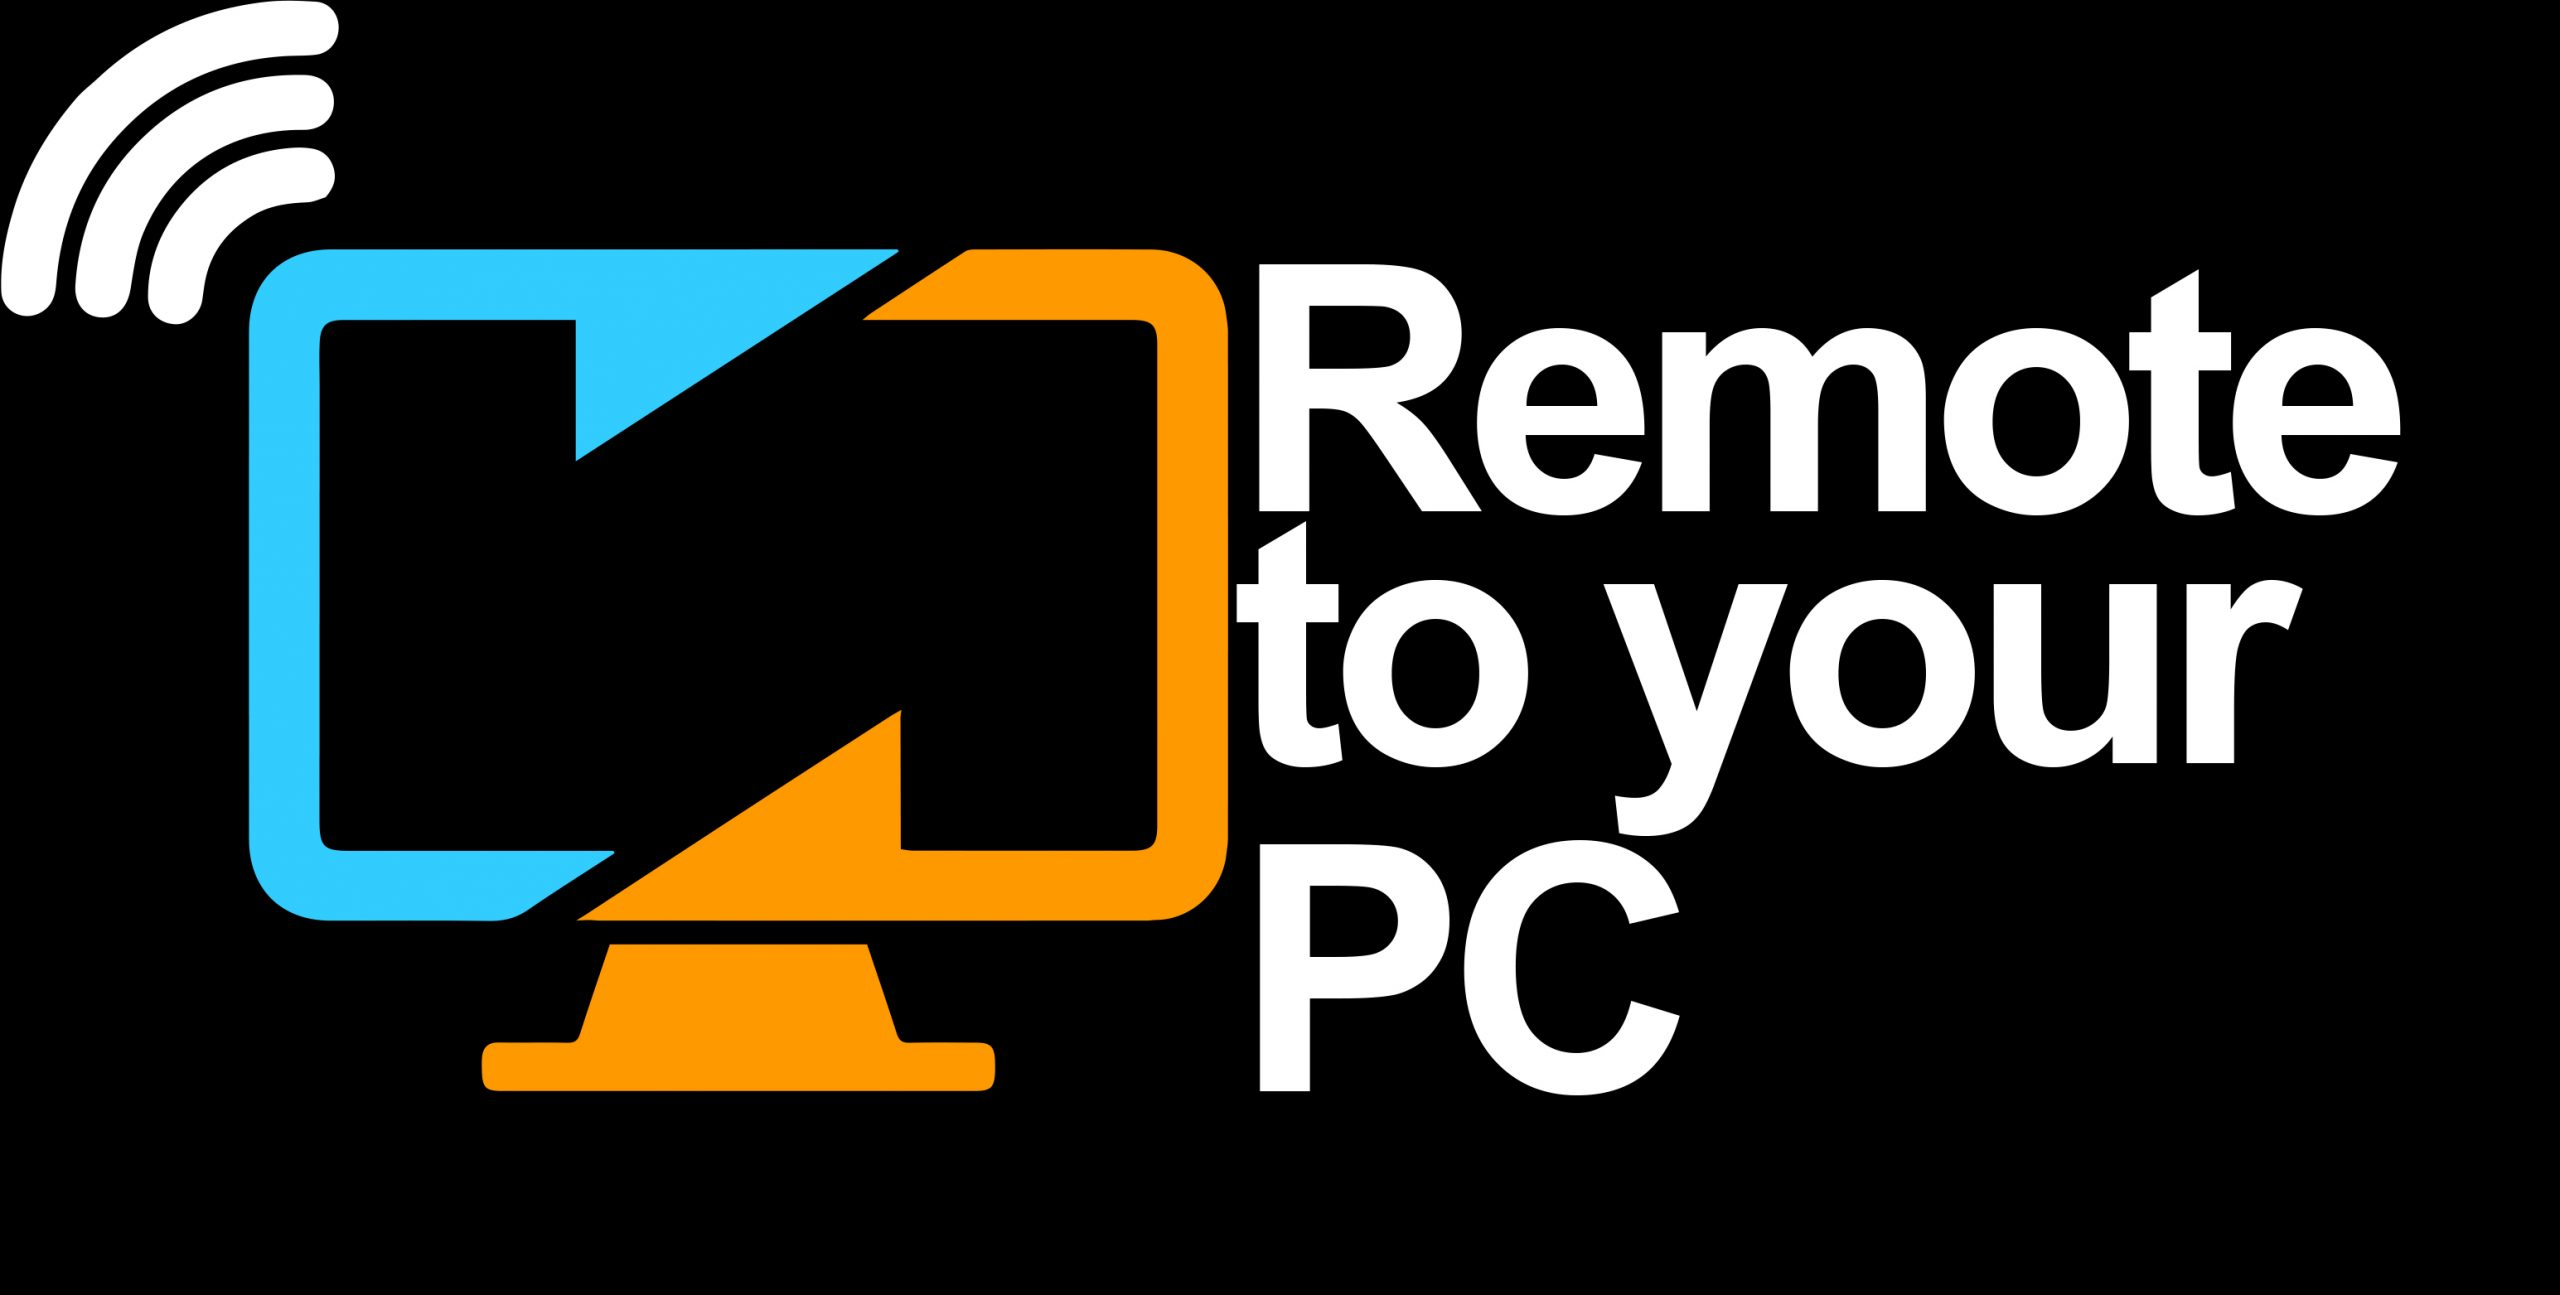 Remote to your PC